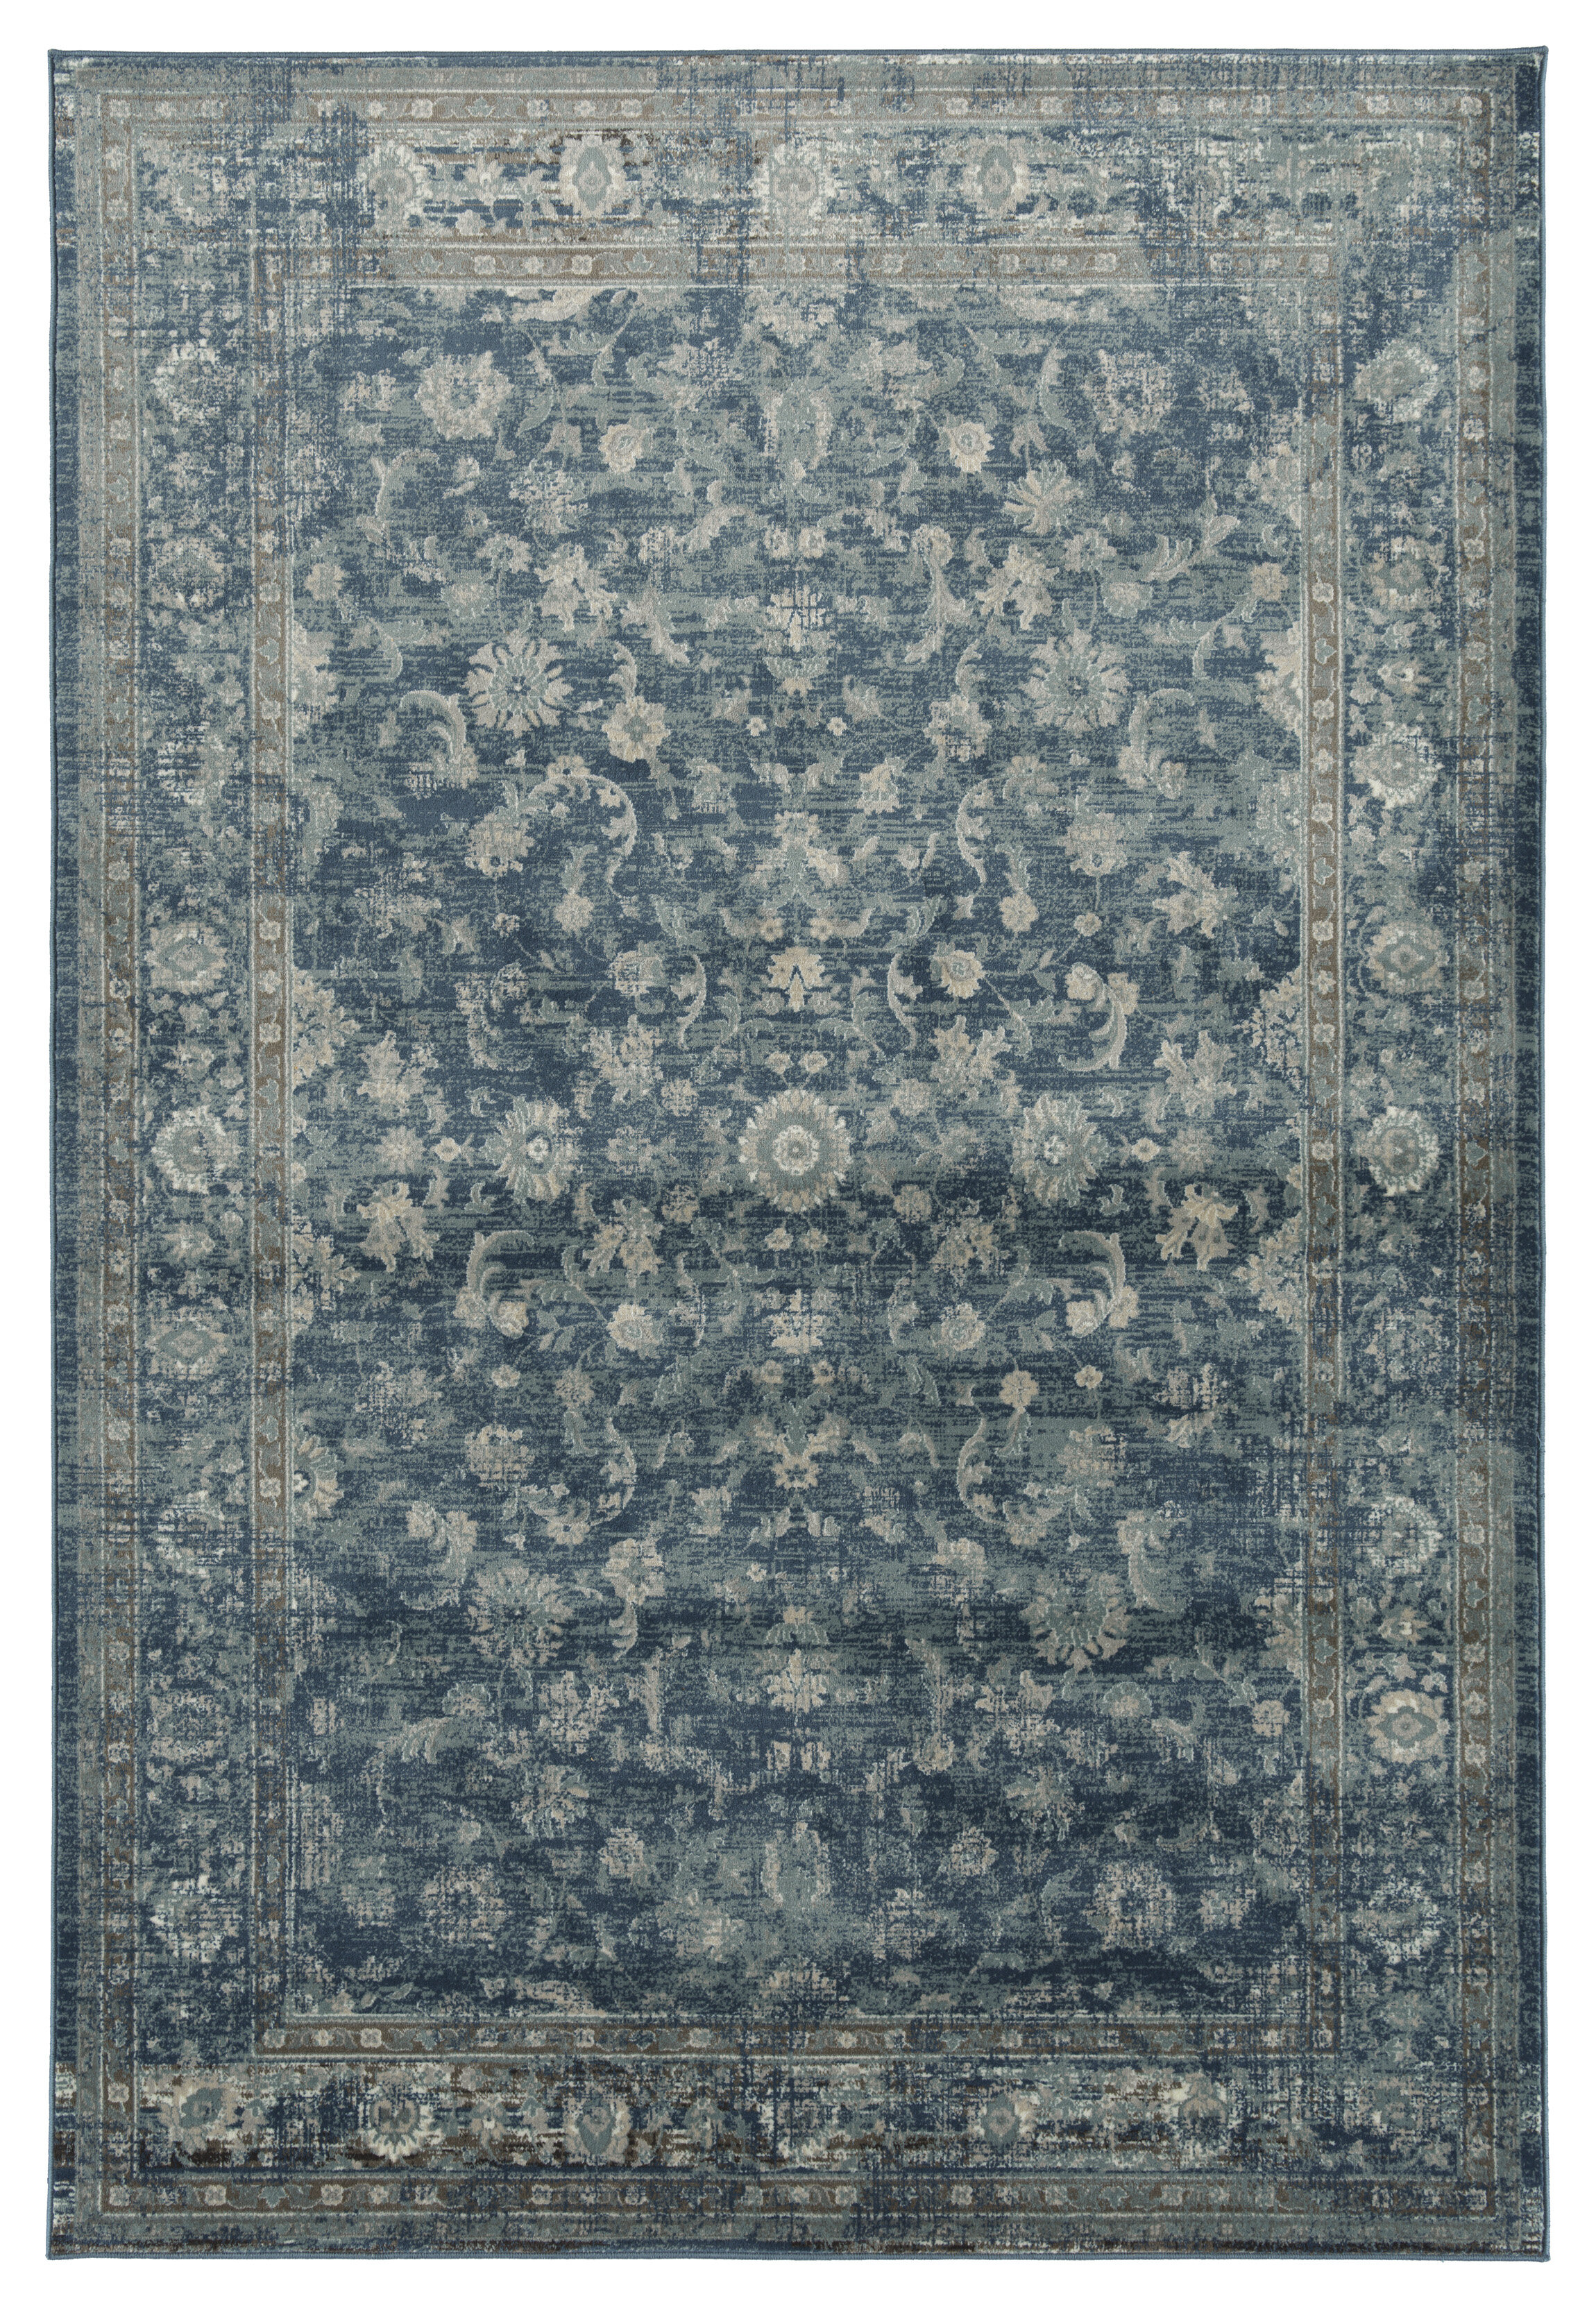 Egypt Paisley Area Rugs You Ll Love In 2021 Wayfair